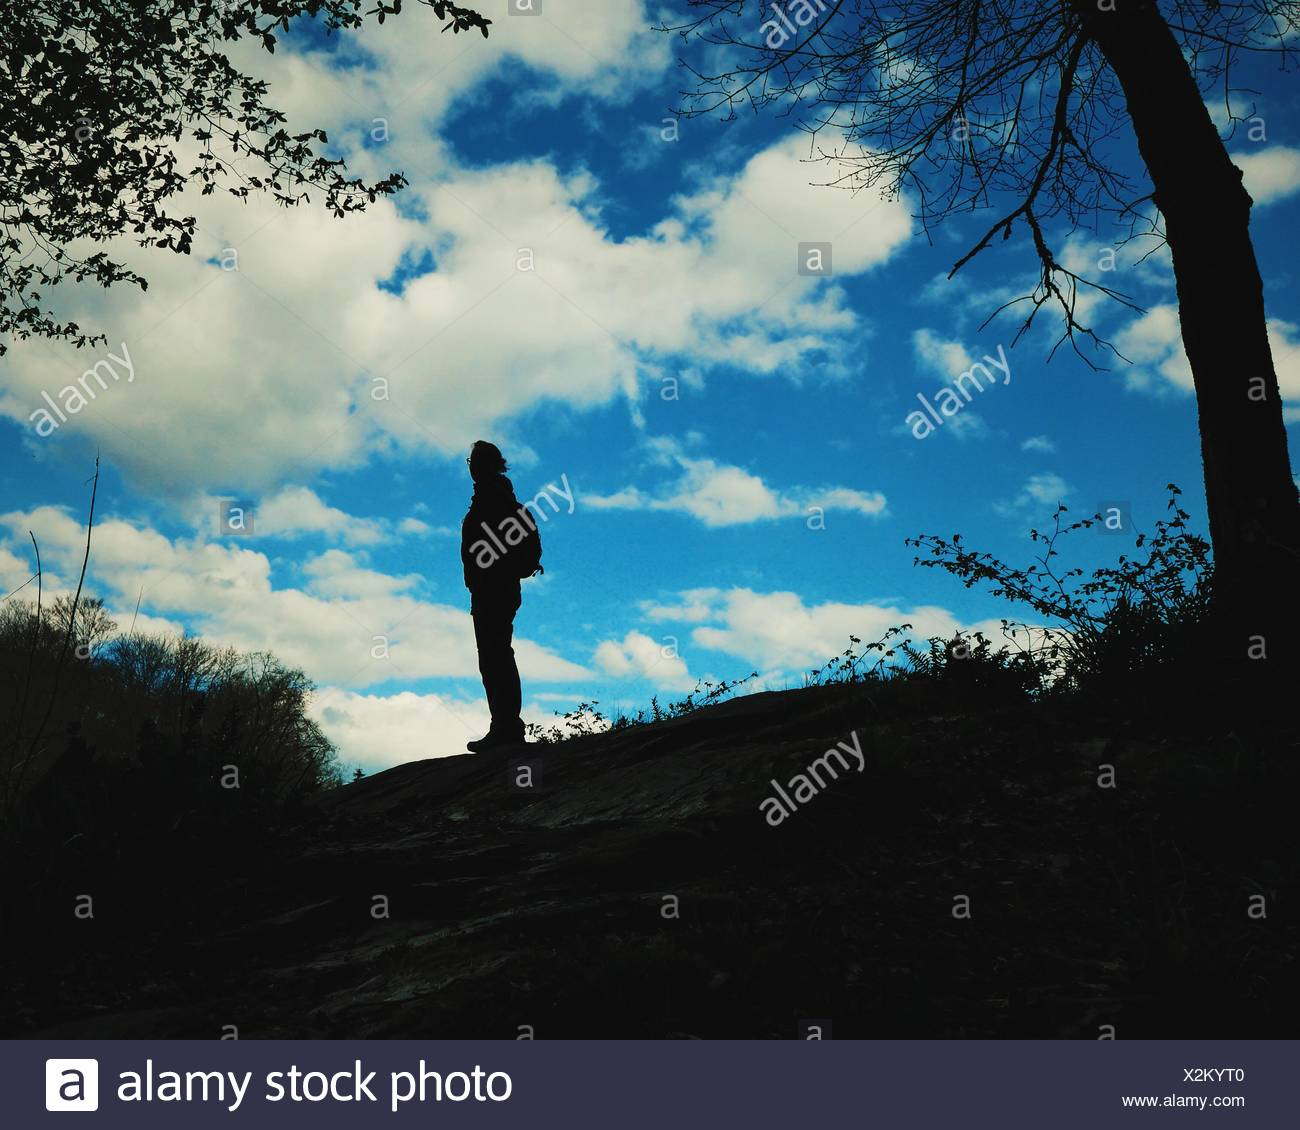 Silhouette Of Woman Standing On Rock - Stock Image